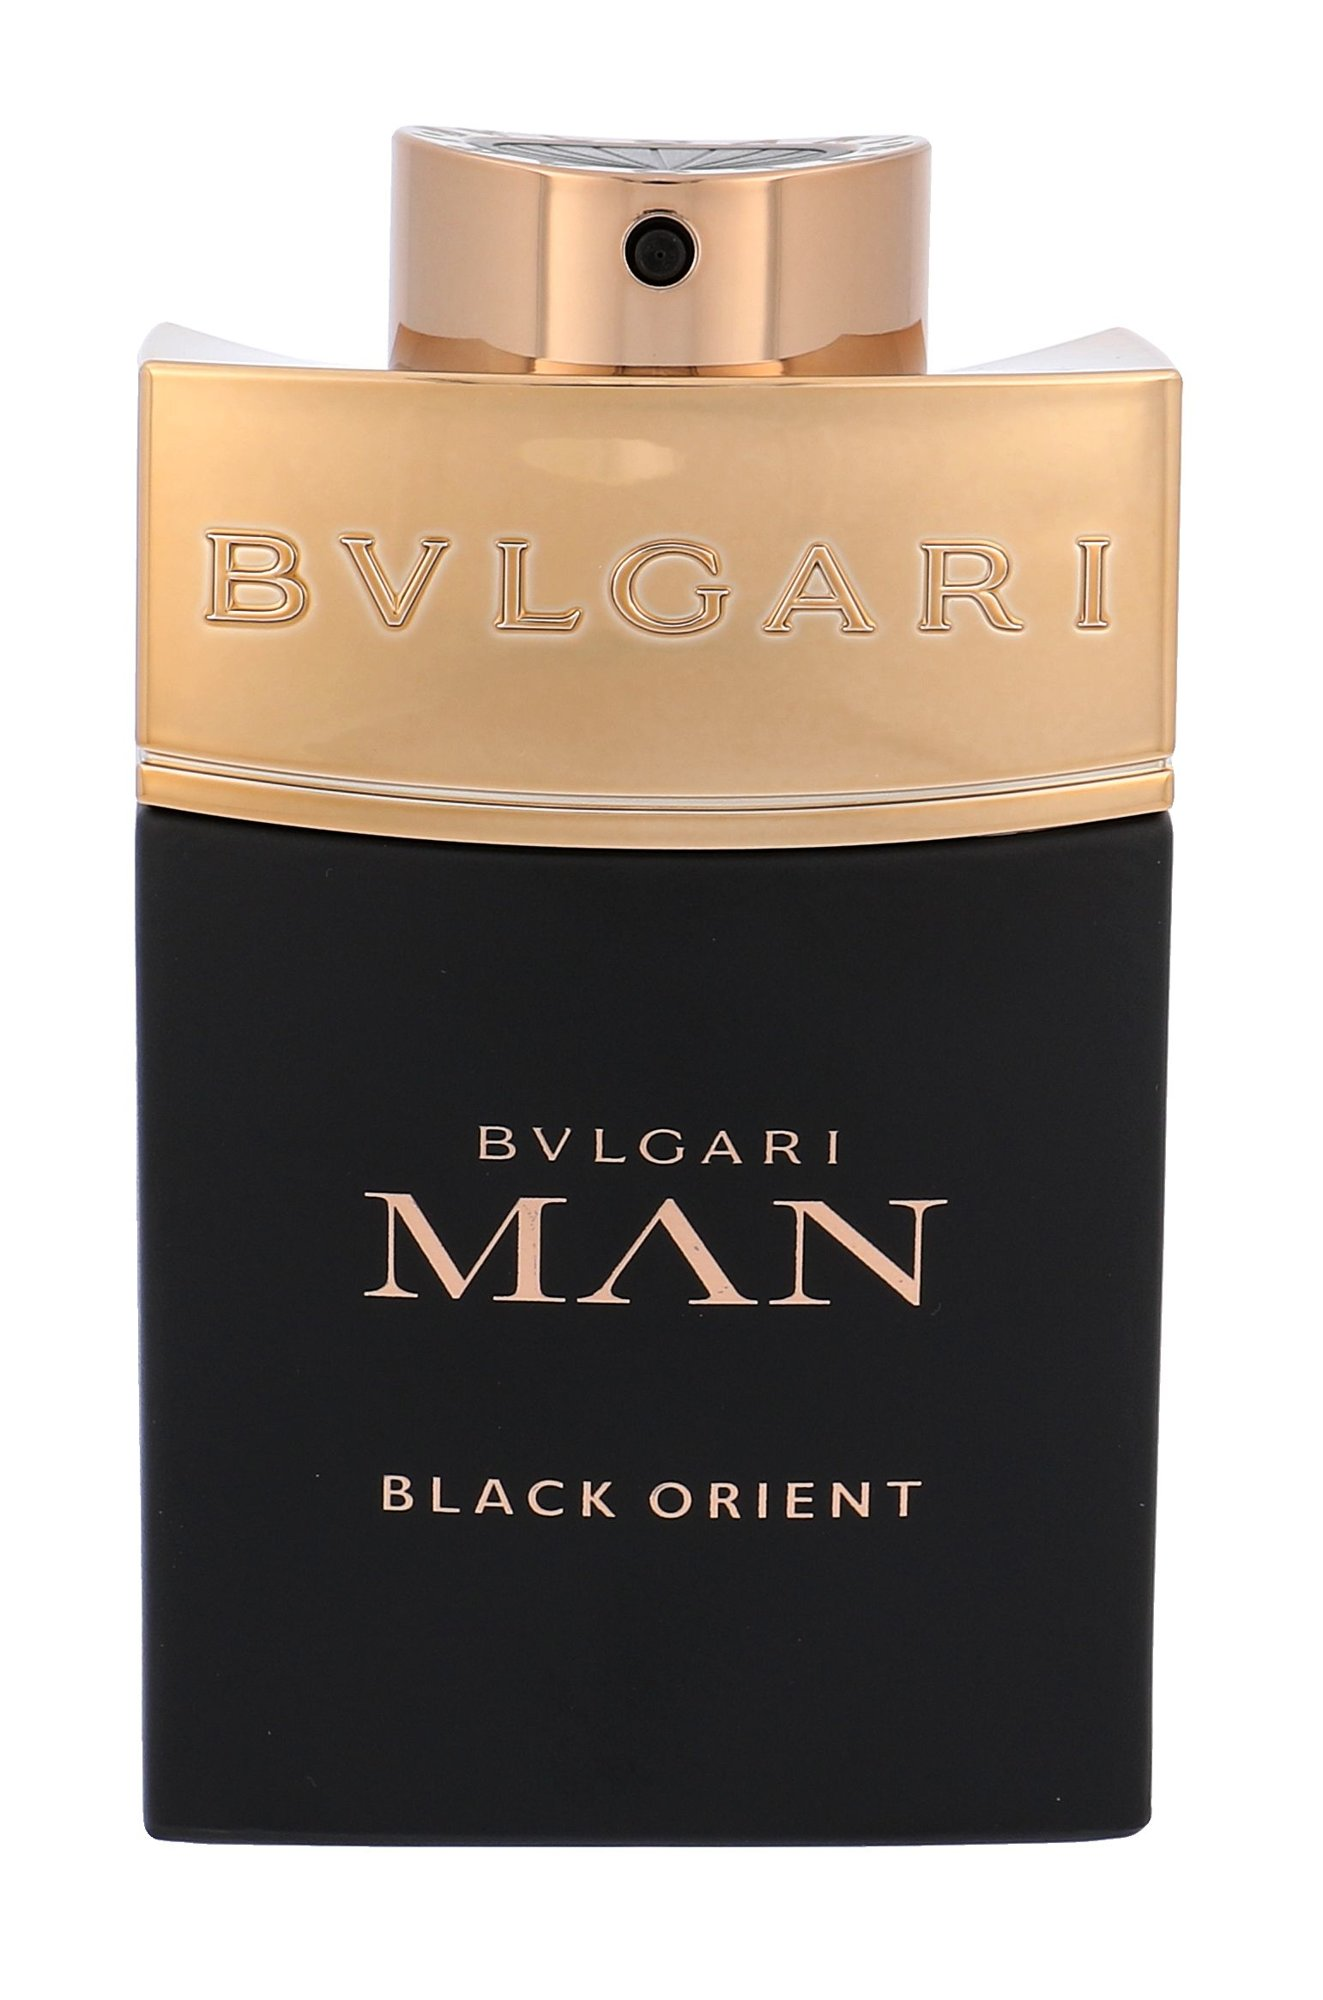 Bvlgari Man Black Orient Parfem 60ml